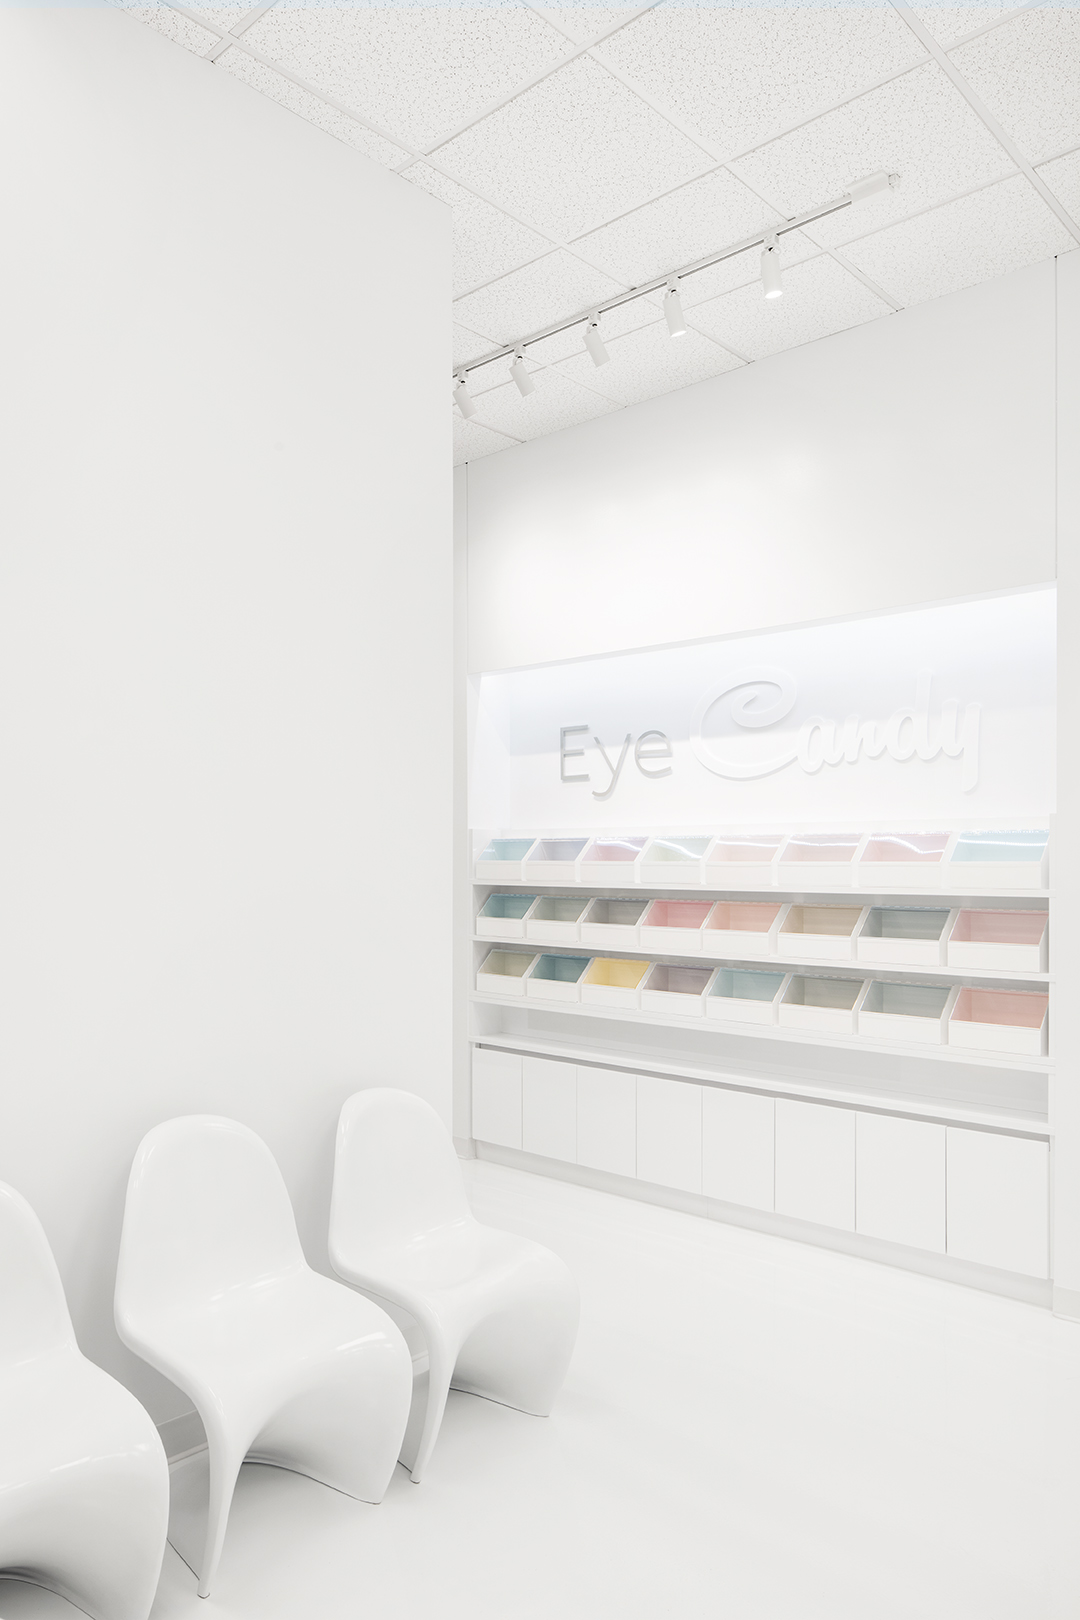 Univers_NuFace_2.3_ADHOC_architectes_©Adrien_Williams_09